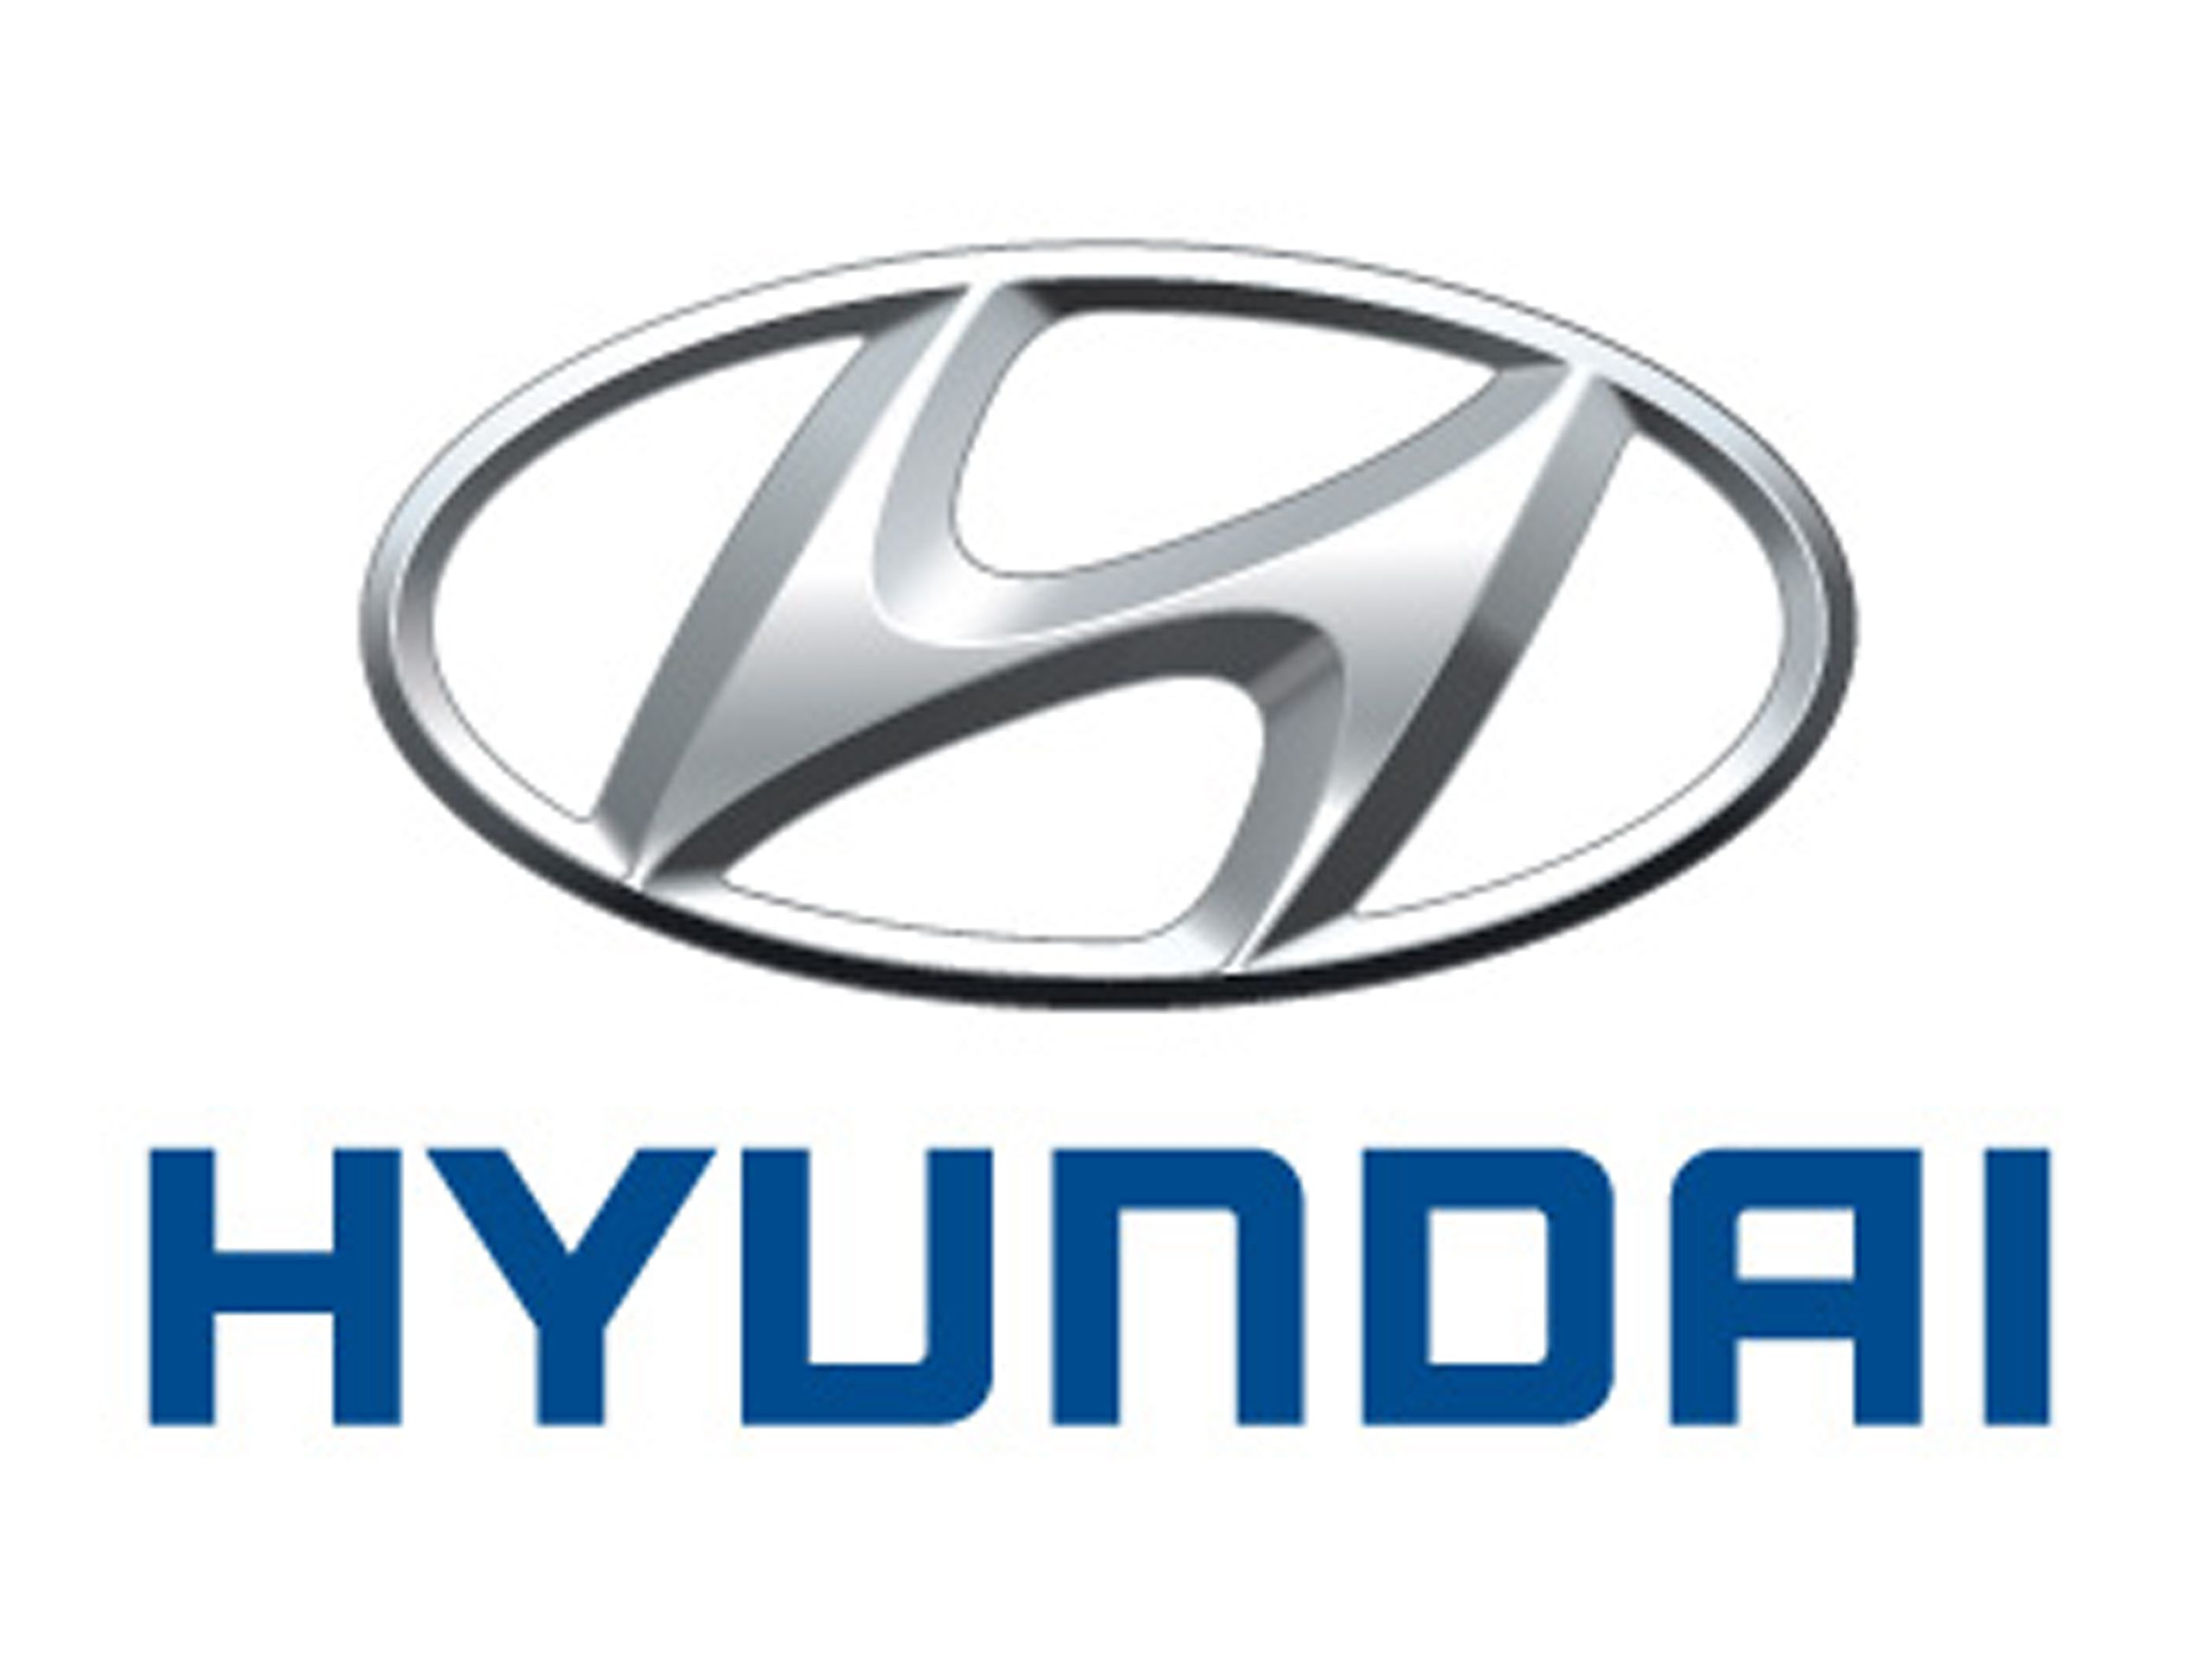 download workshop manuals for hyundai all model at great price from emanualonline com [ 2560 x 1920 Pixel ]